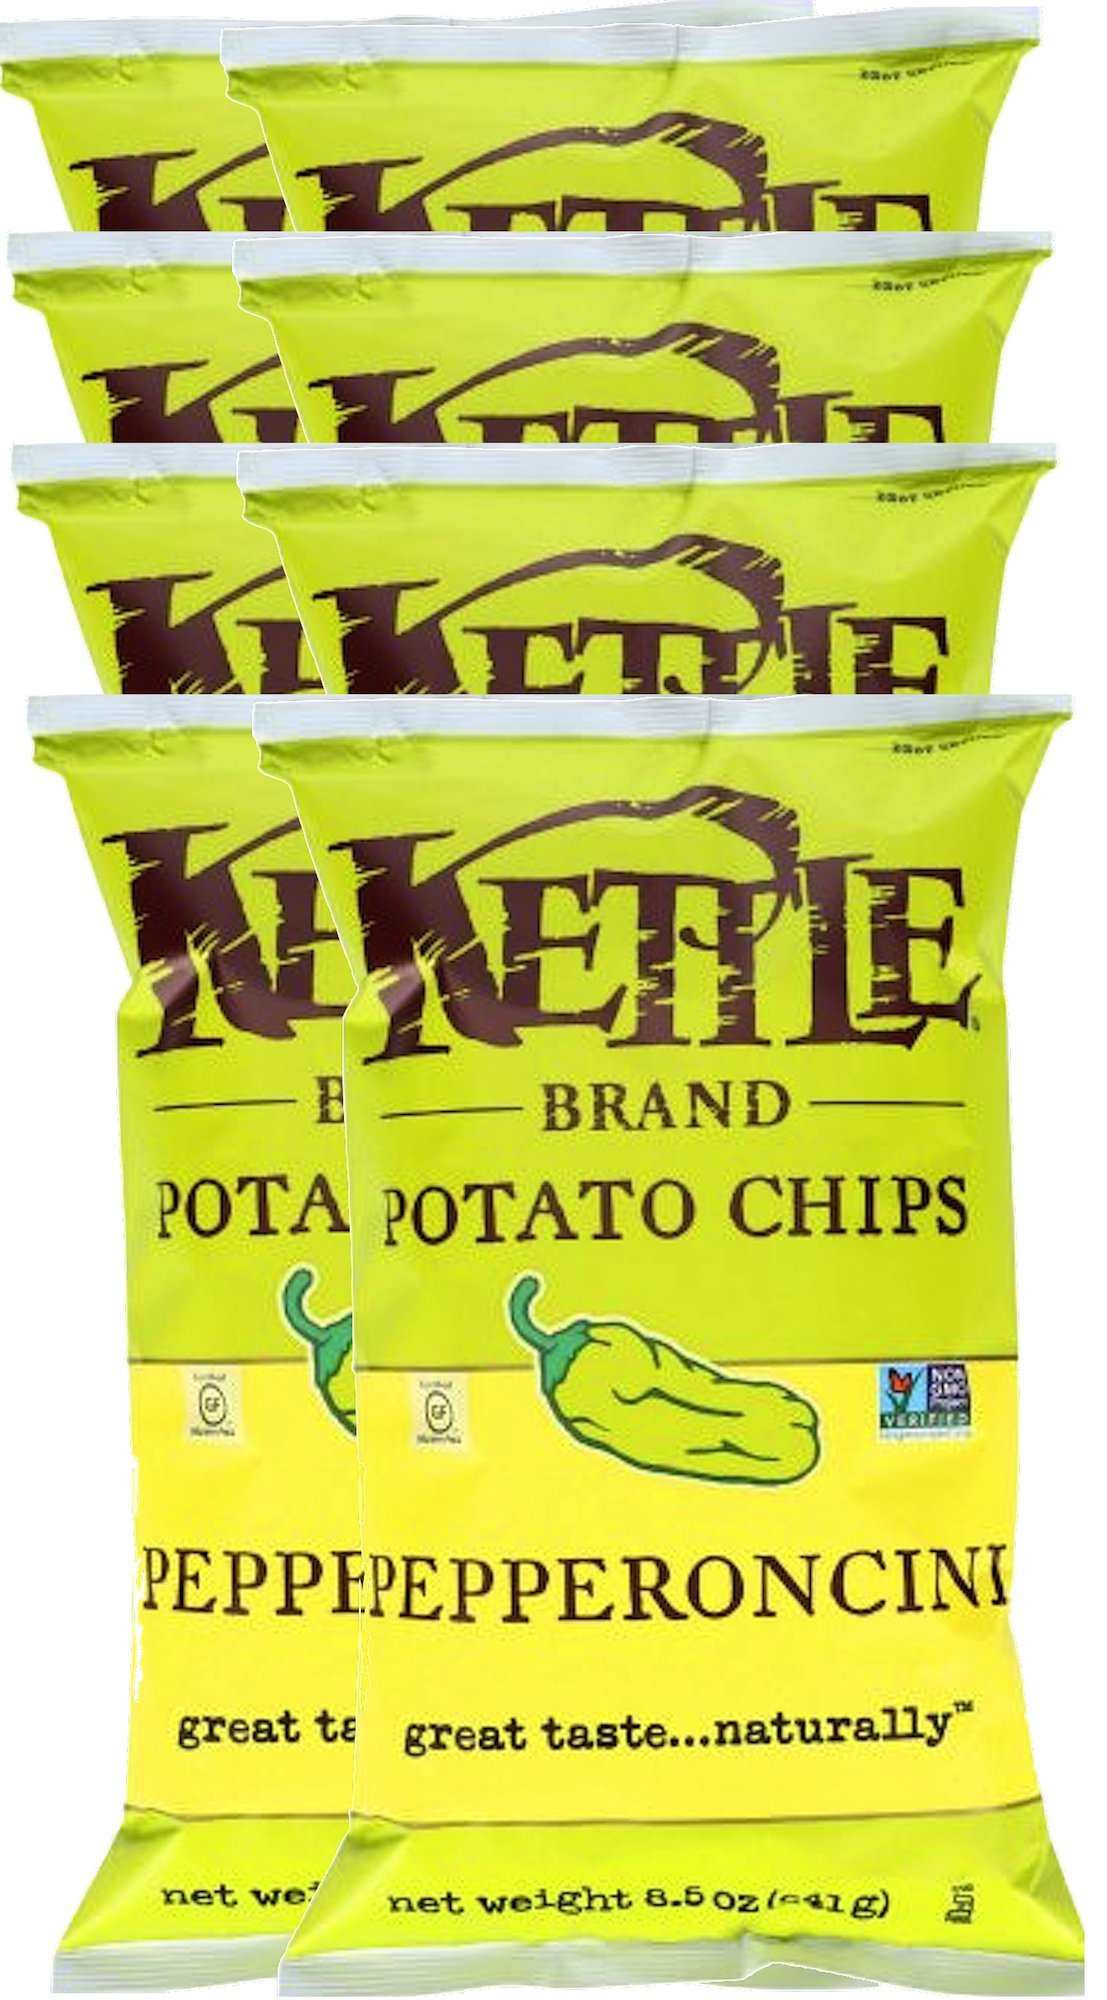 Kettle Brand Kettle Gluten Free Chips Pepperoncini 8.5oz Snack Care Package for College, Military, Sports (8) by Kettle Brand